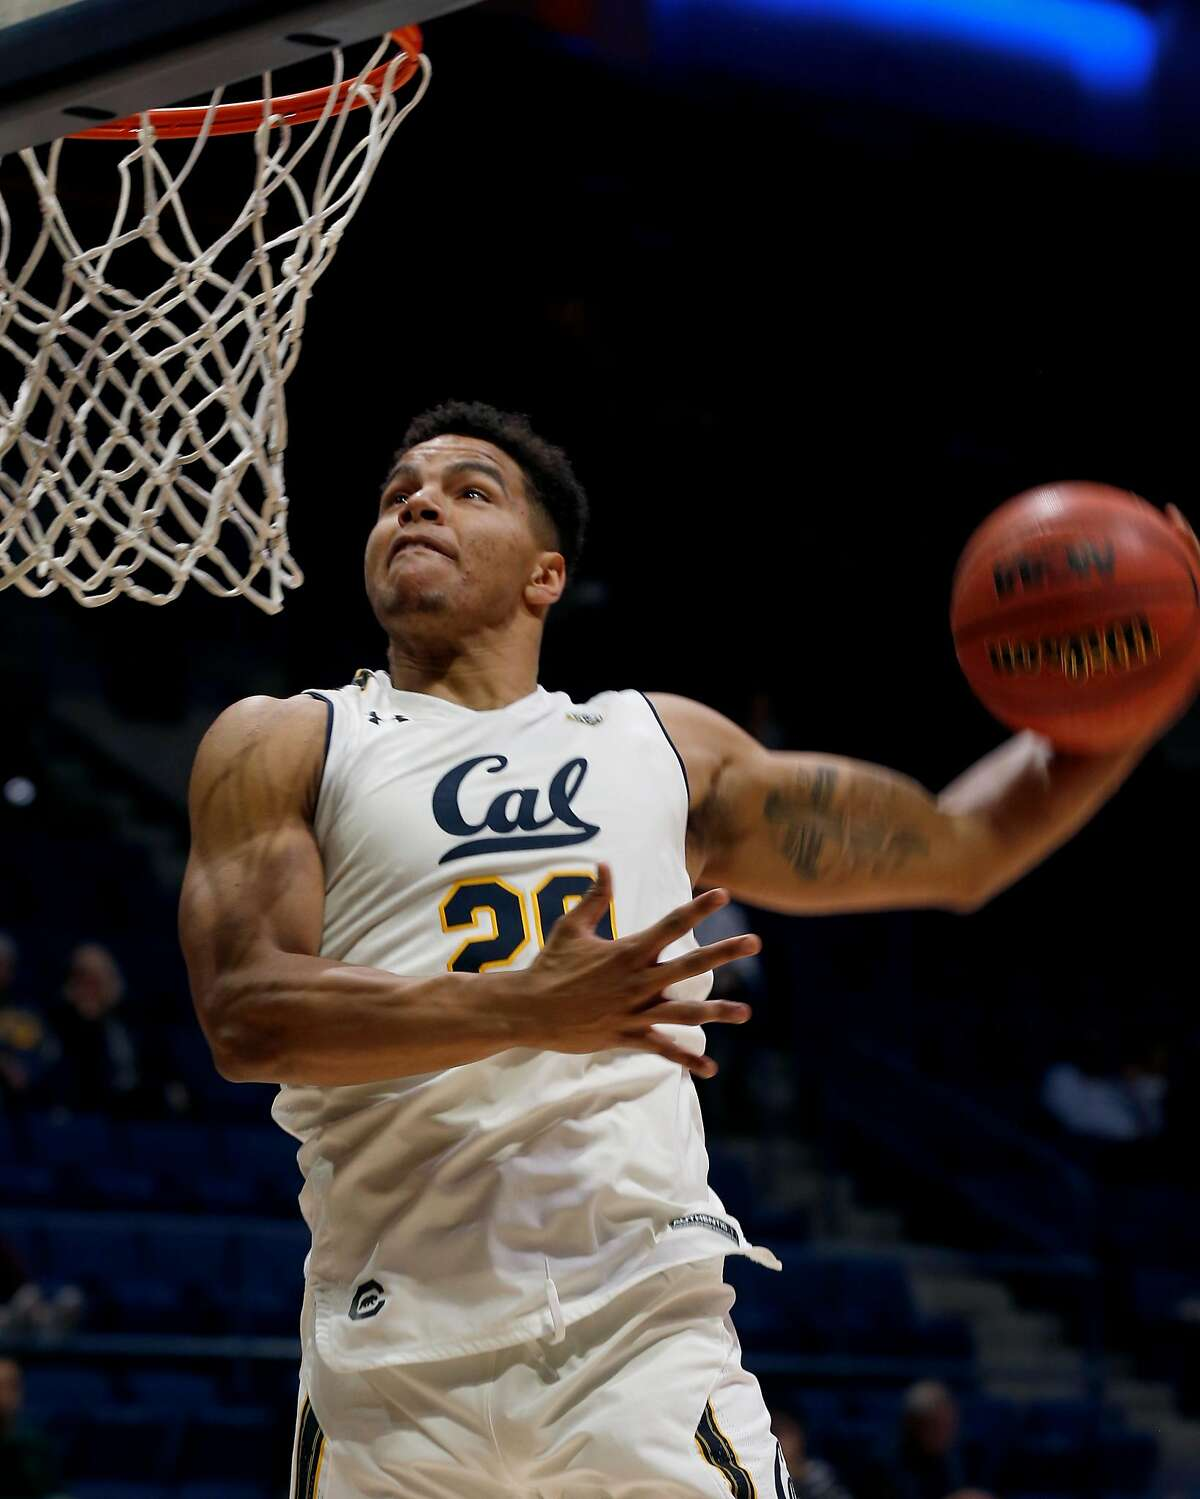 Matt Bradley moves in for a layup in the California Golden Bears exhibition basketball game against the Cal State East Bay Pioneers at Haas Pavilion in Berkeley, Calif. on Tuesday, Oct. 30, 2018.